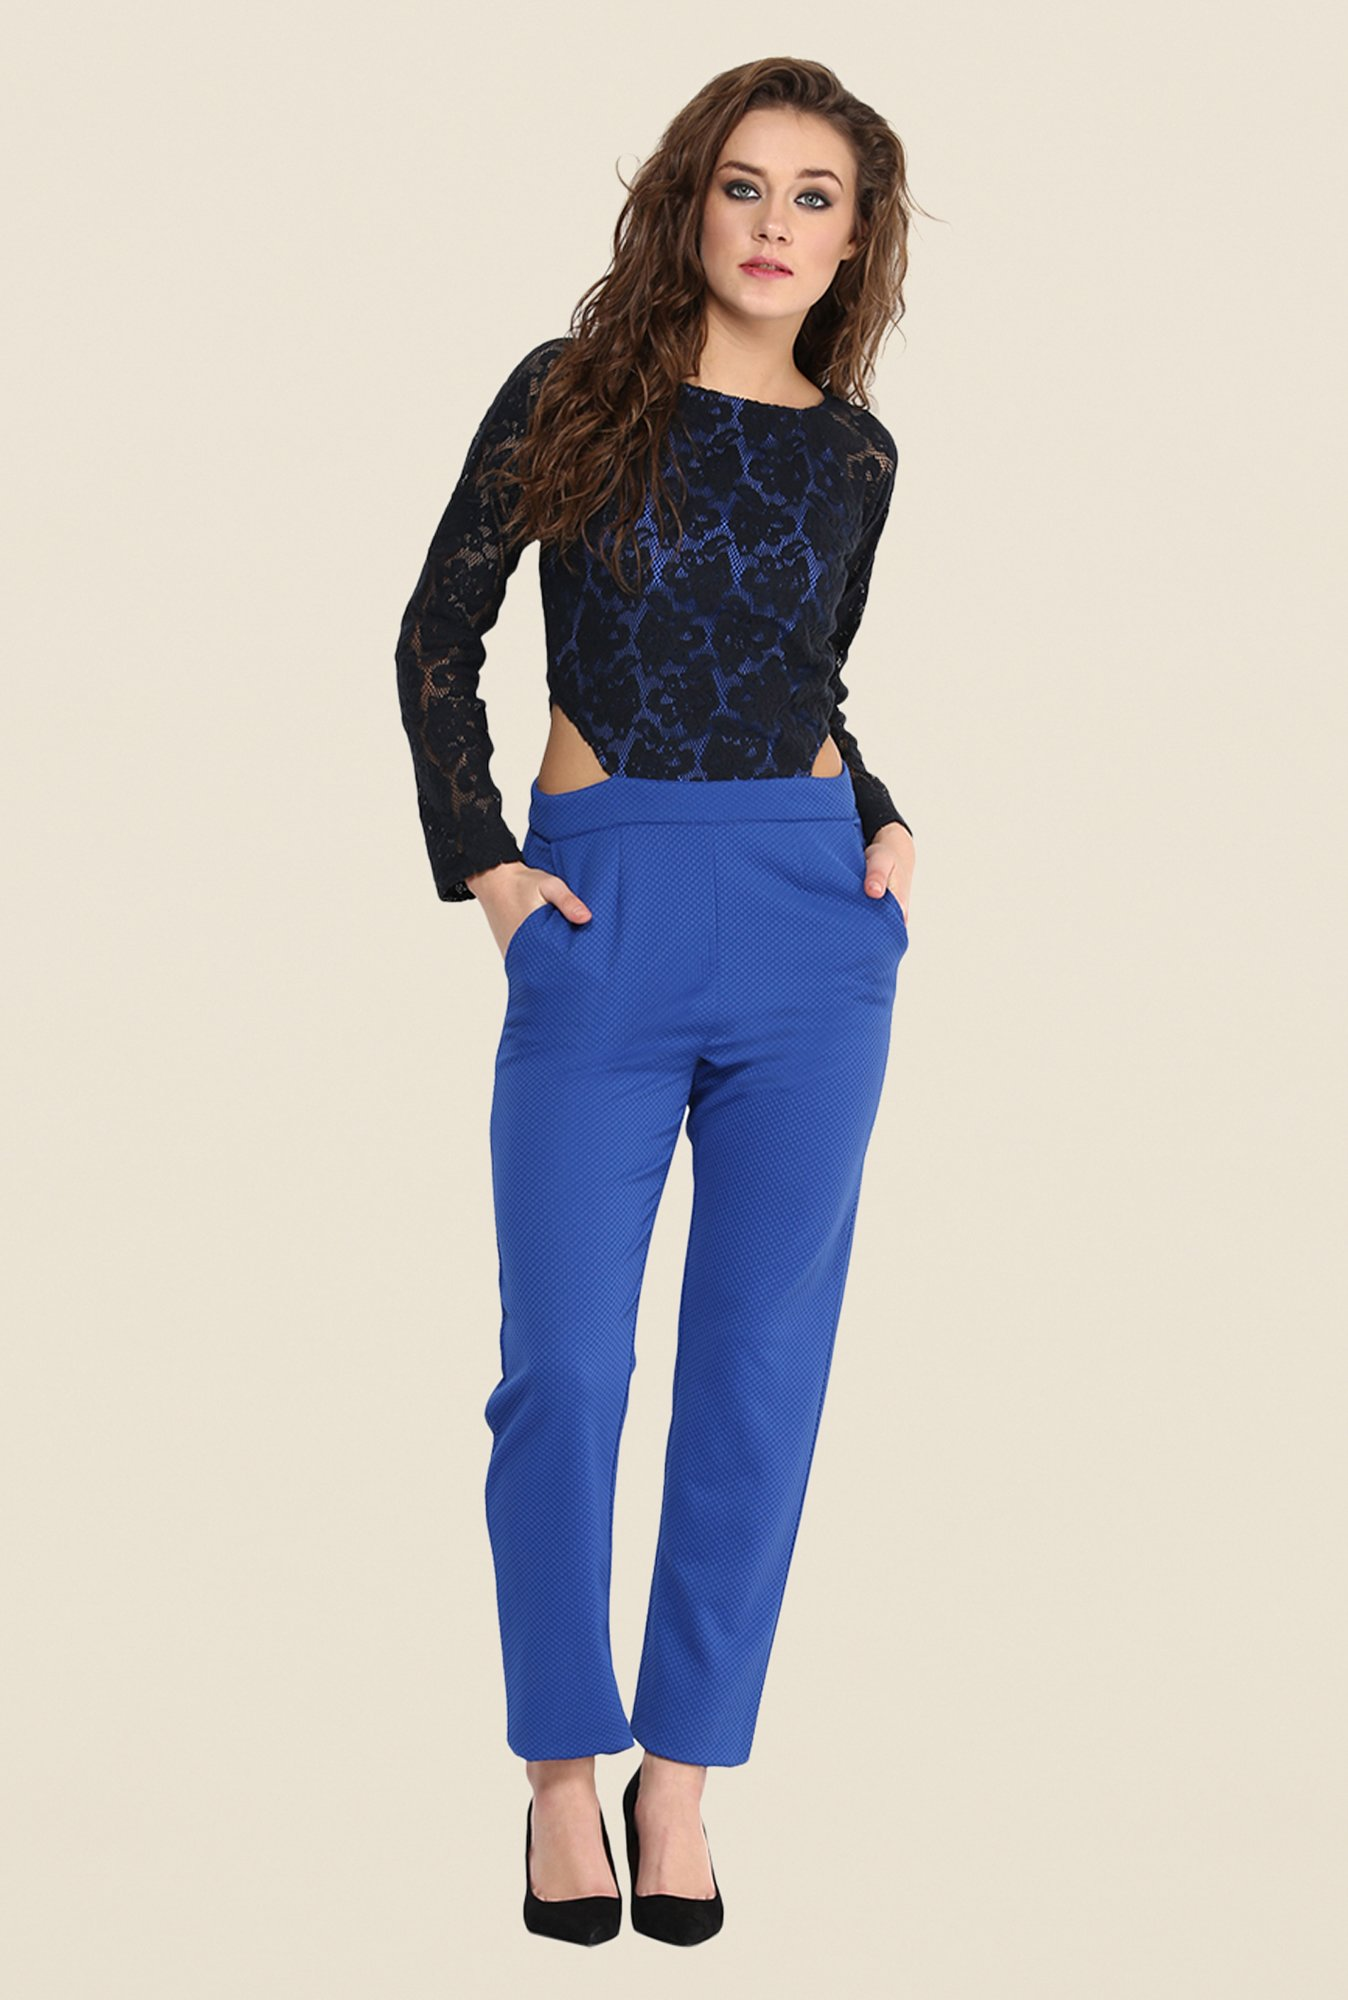 Yepme Marie Blue & Black Jumpsuit